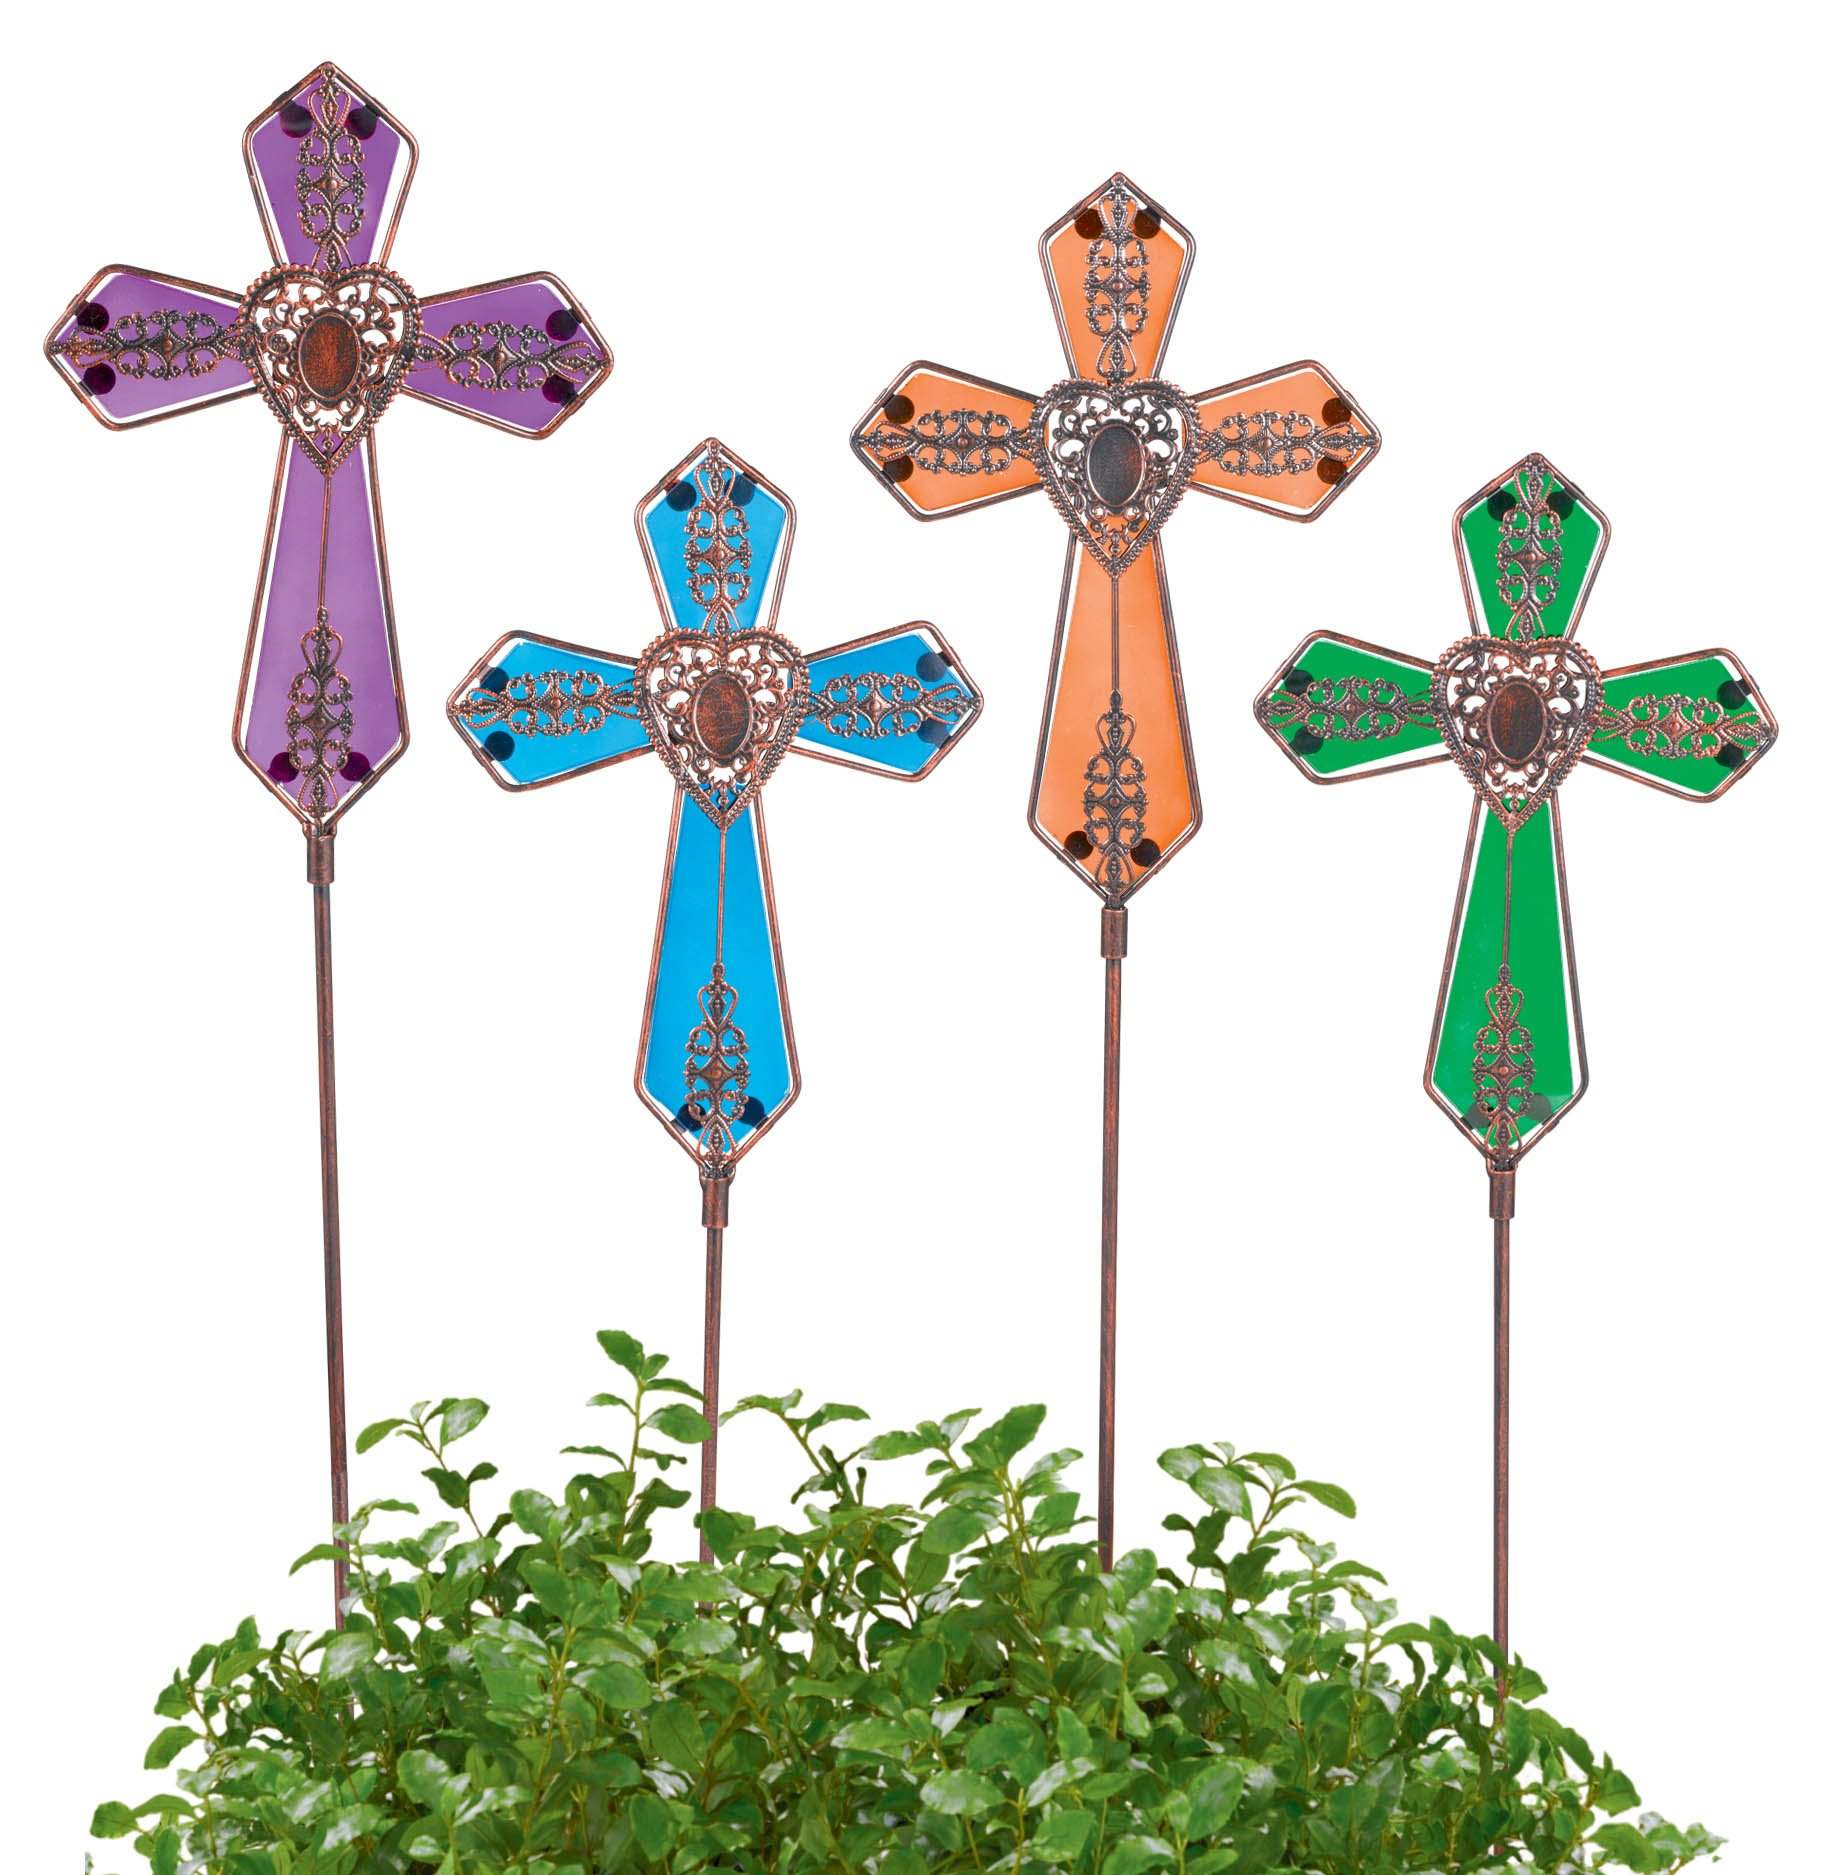 Grasslands Road 24'' Metal and Glass Cross Stake (8 Pack), Large, Assortment